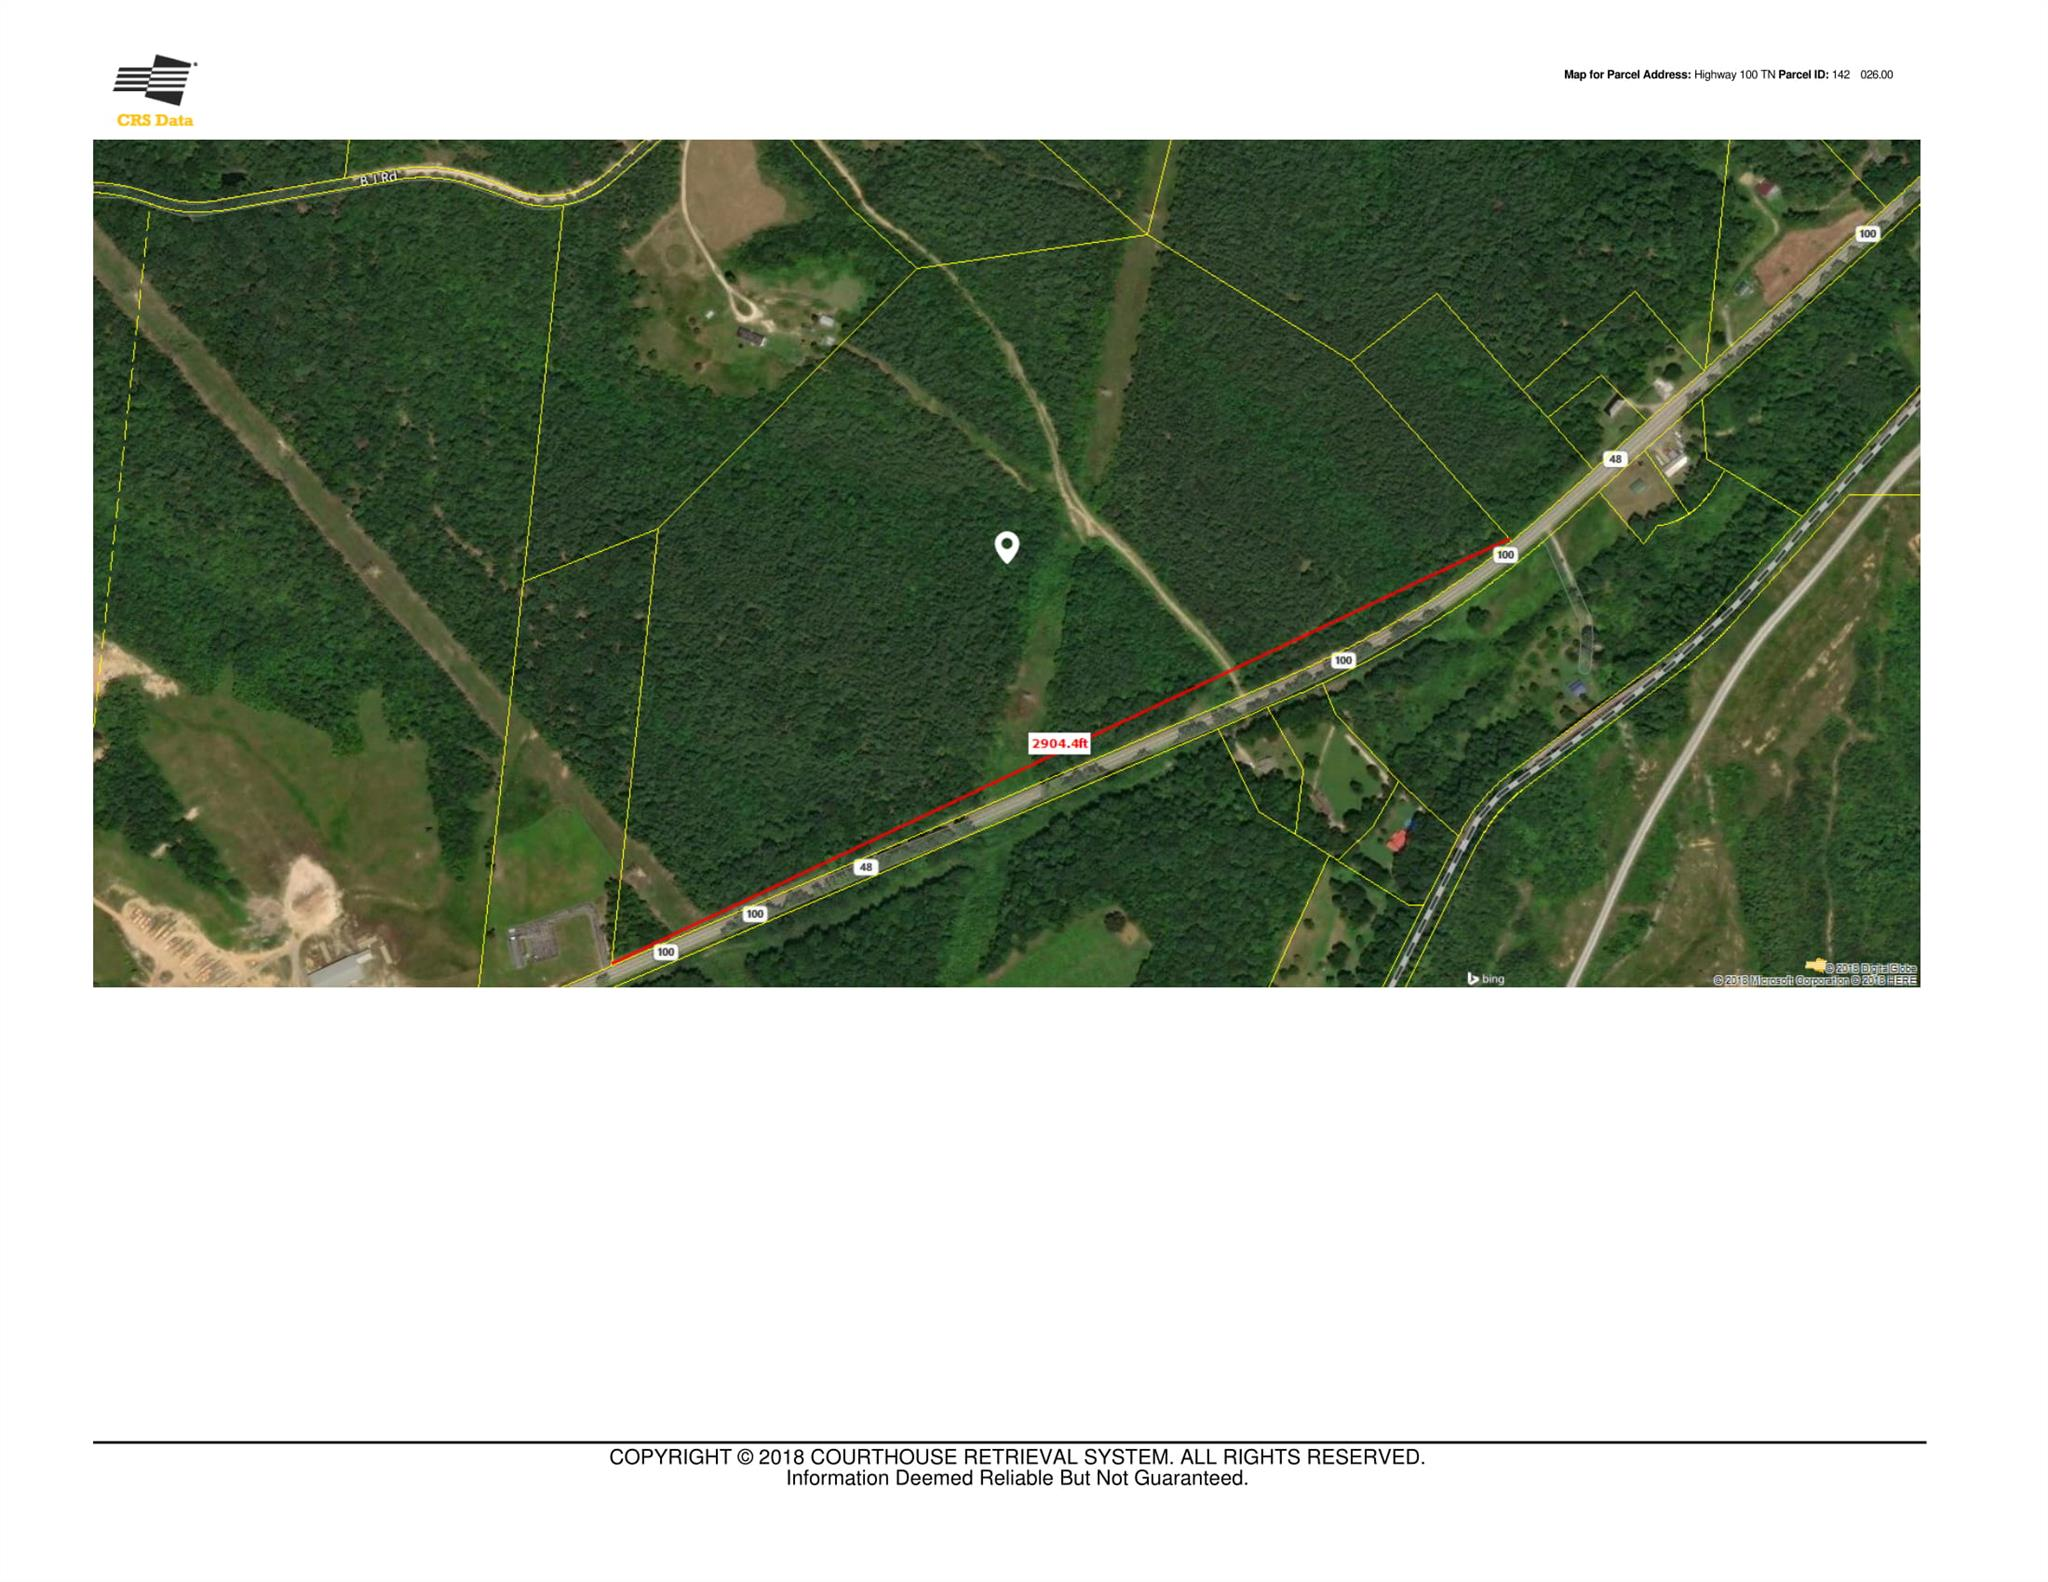 Centerville Tn Real Estate For Sale Property Search